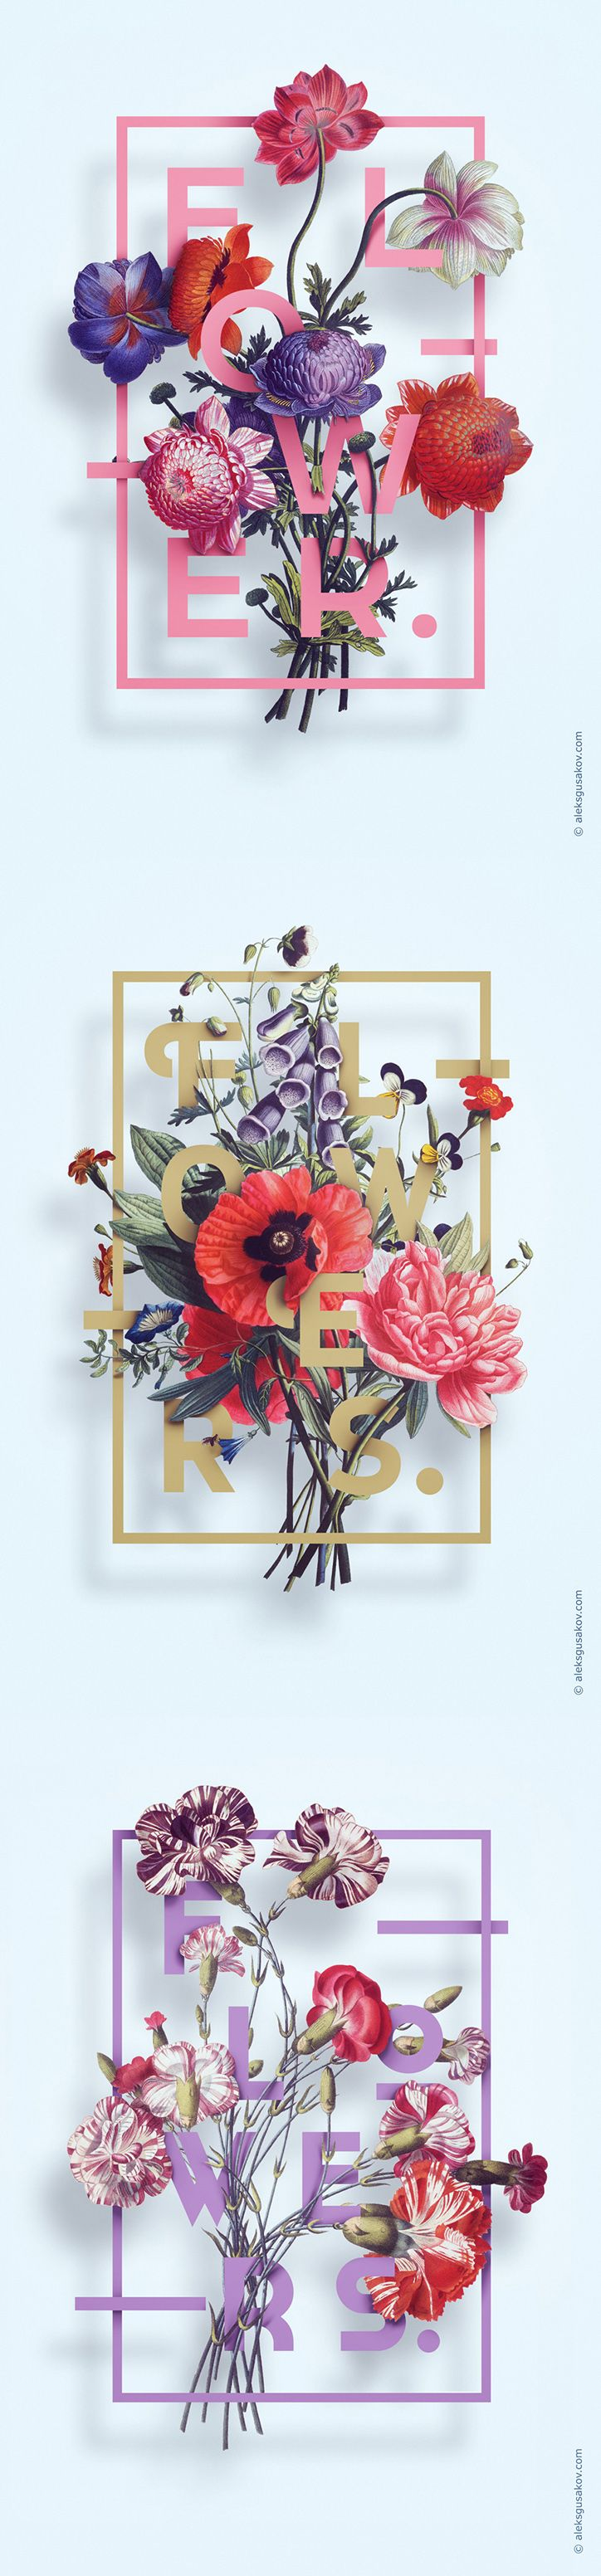 Definition of a poster design - Origin From Flora Roman Goddess Of Flowers Definition